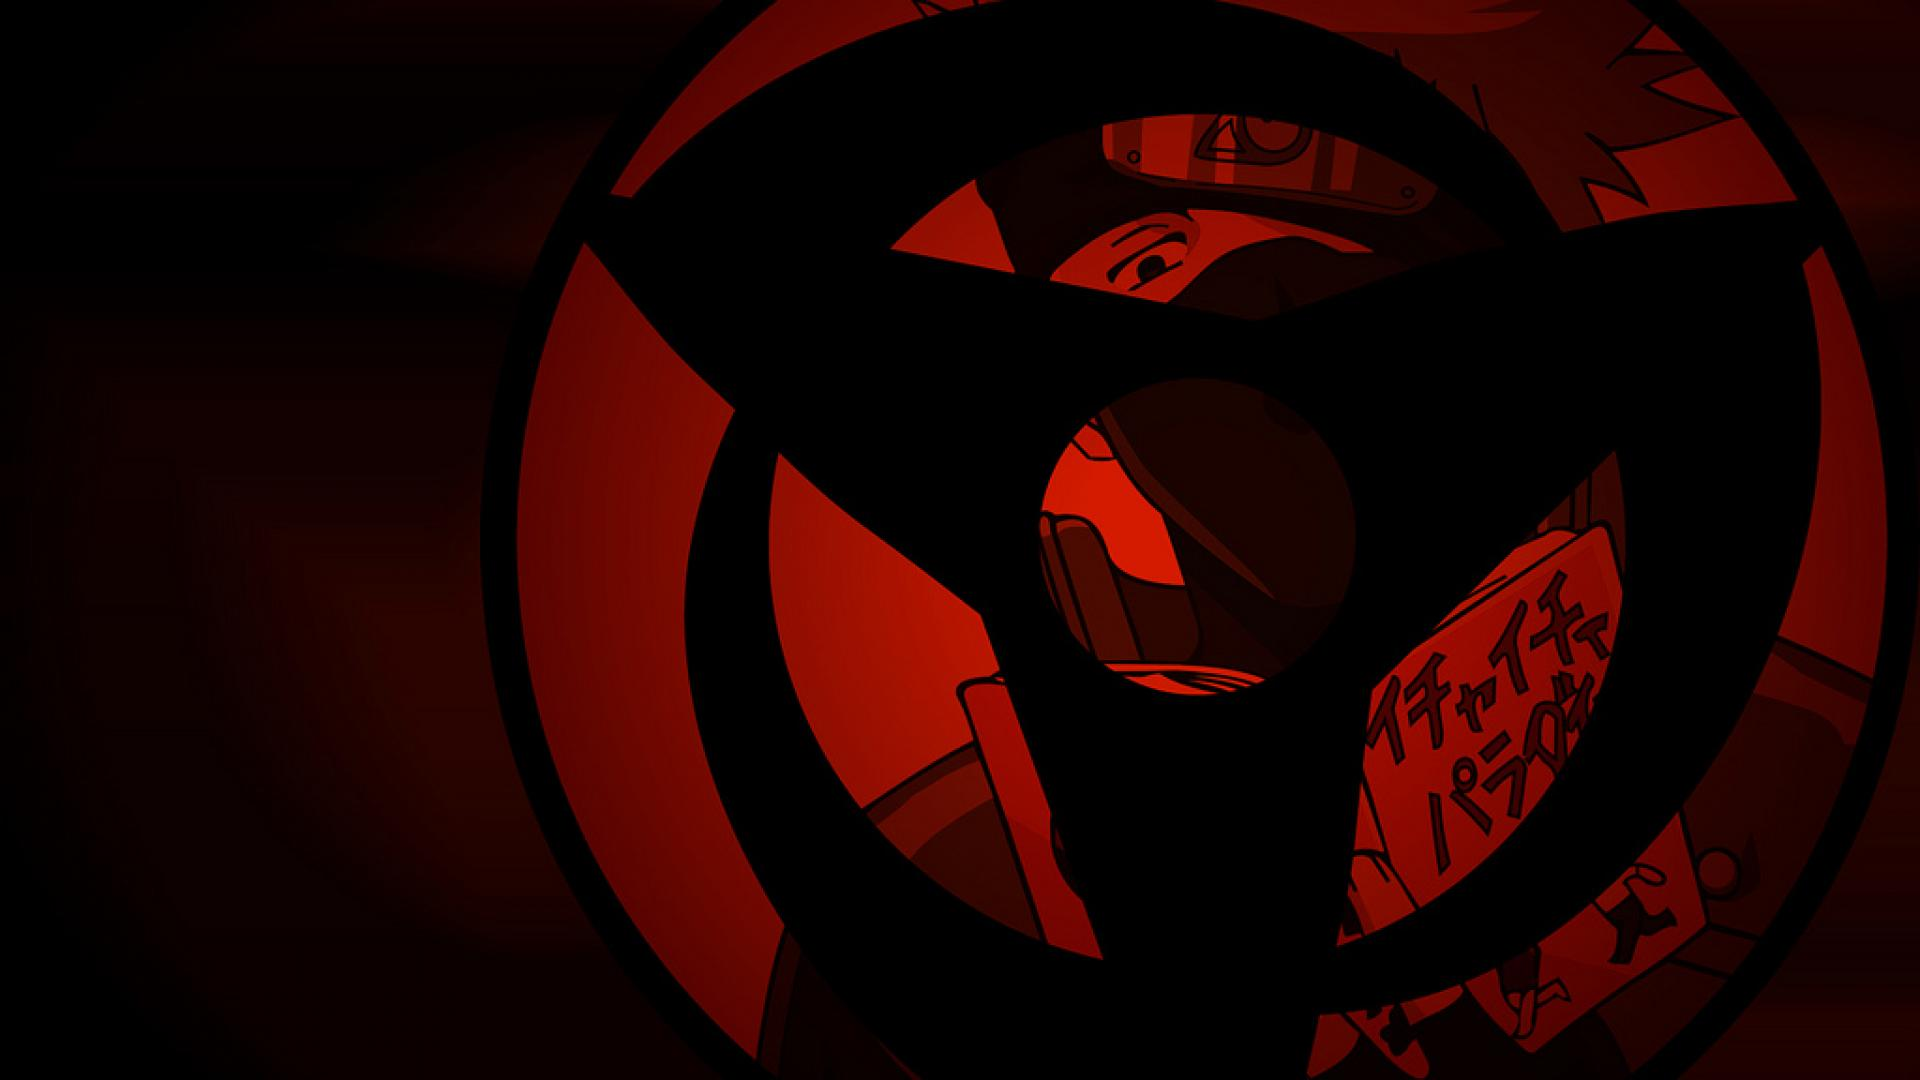 sharingan wallpaper hd 1920x1080 wallpapersafari